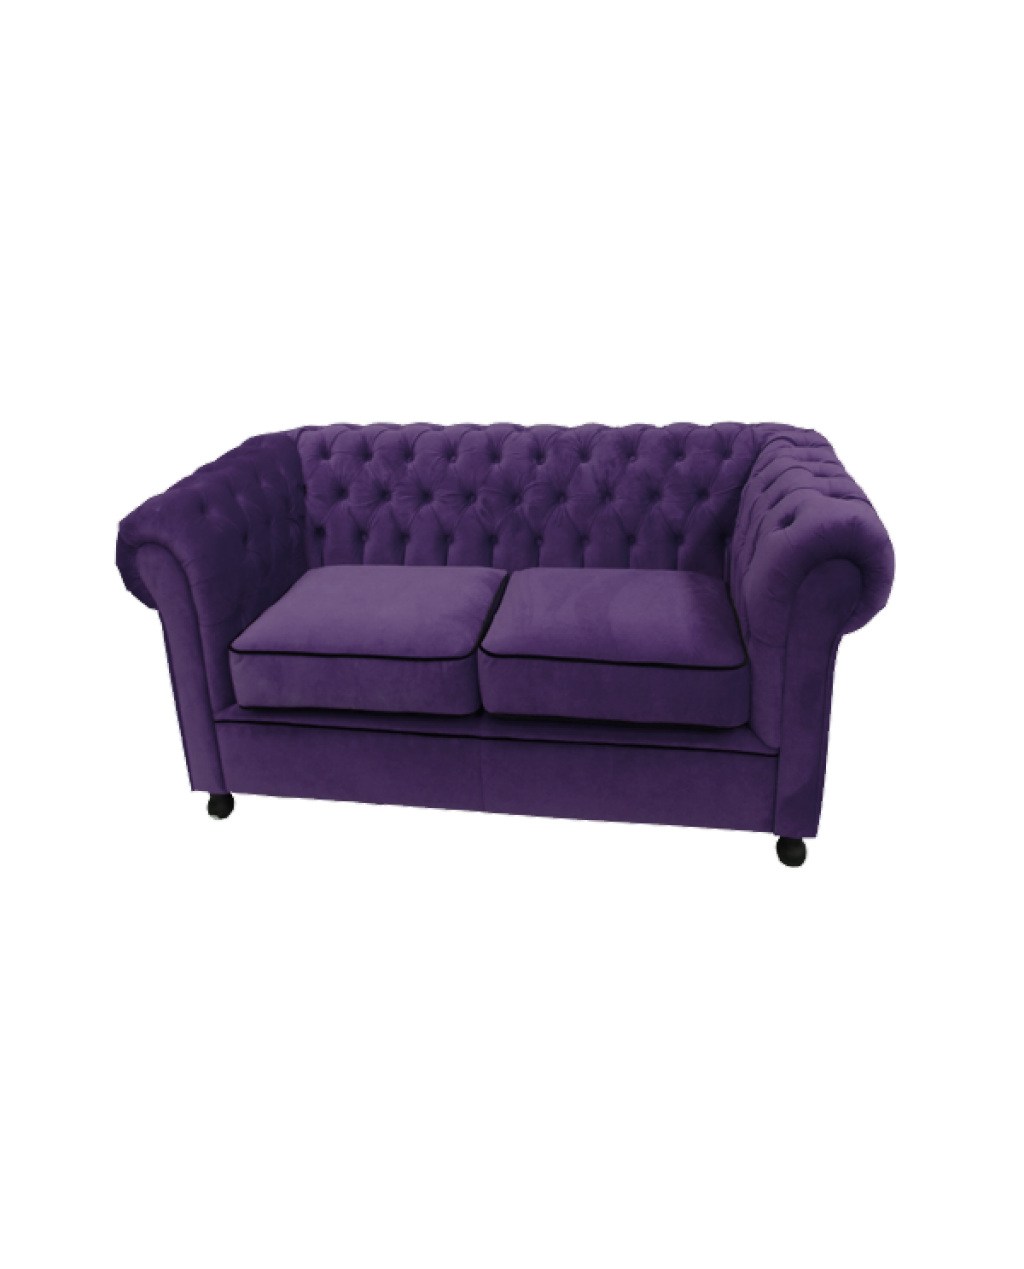 Purple Sofa | Plum Sectional Sofa | Purple Chesterfield Sofa